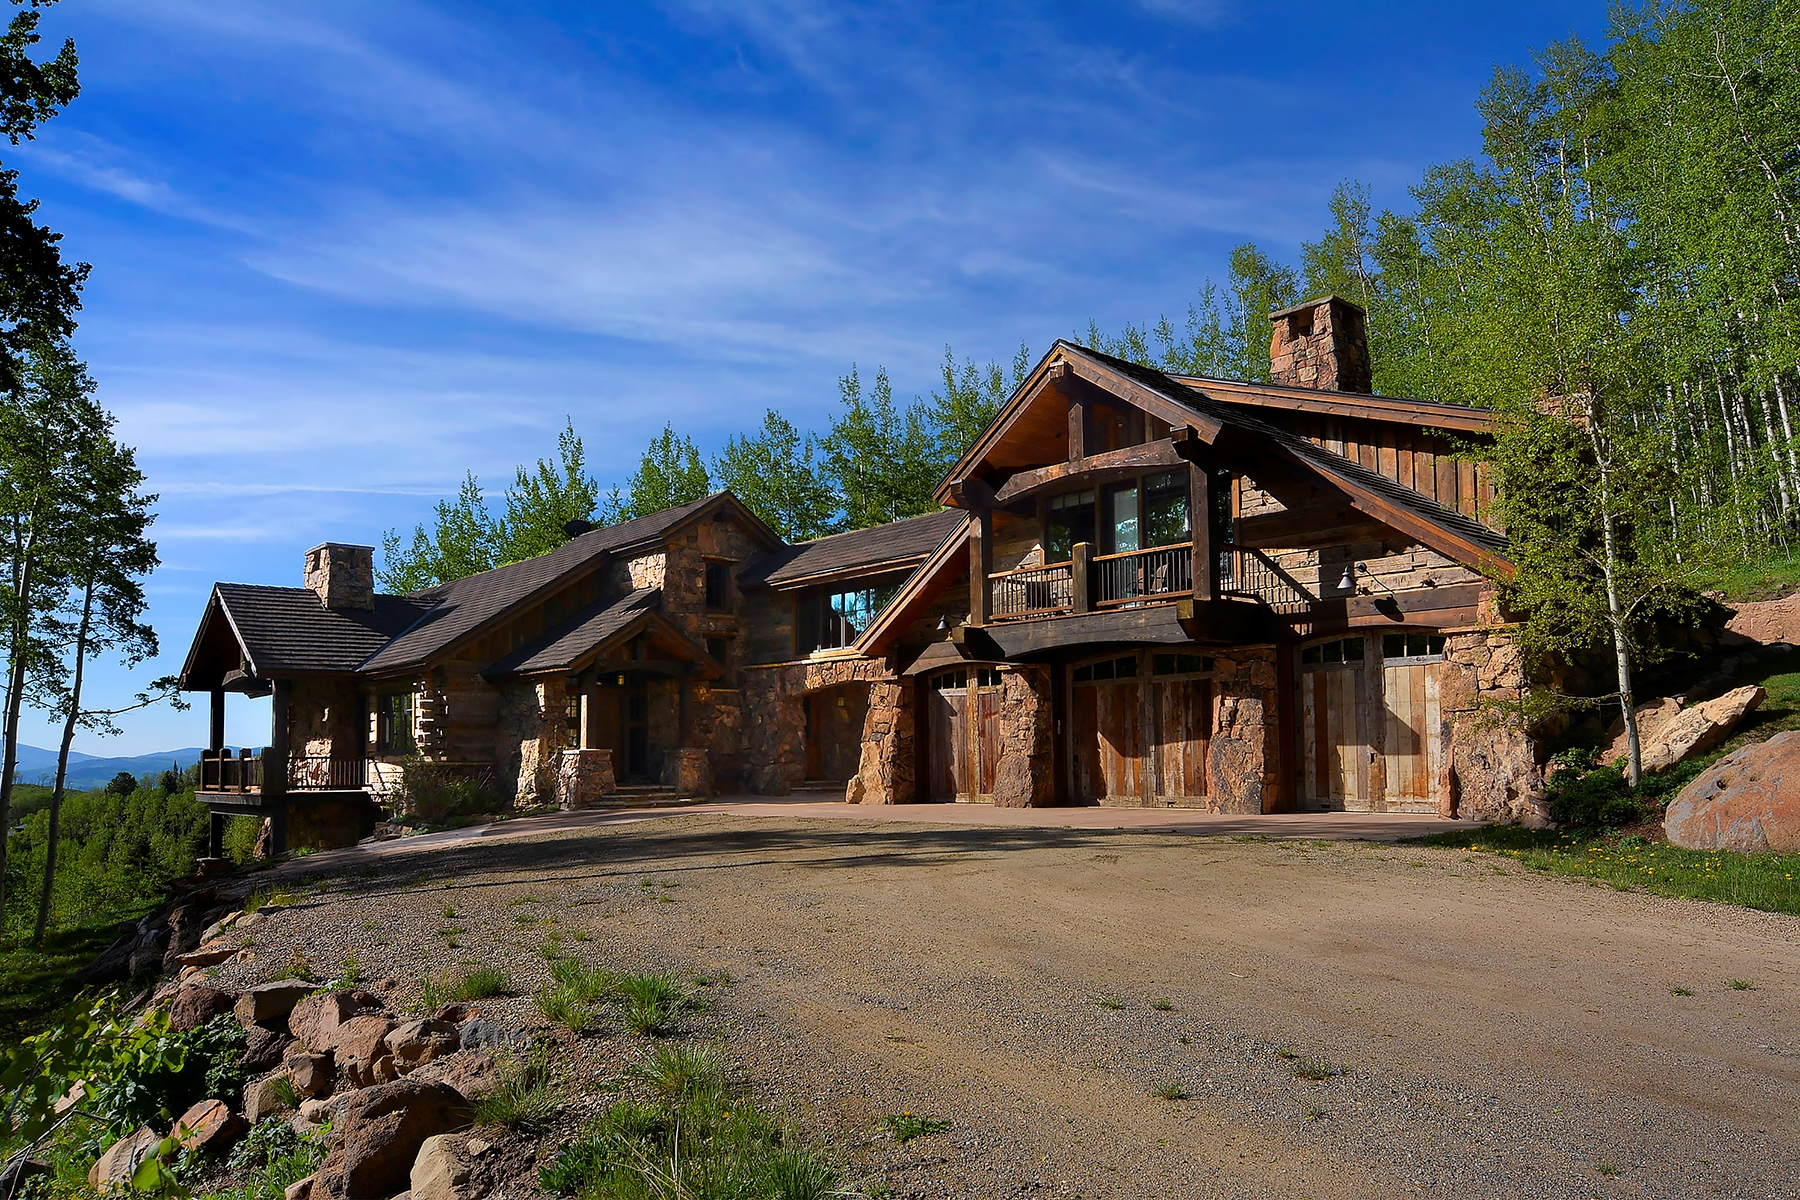 Casa Unifamiliar por un Venta en Spectacular Home with Privacy 1515 Red Mountain Ranch Road Crested Butte, Colorado, 81224 Estados Unidos